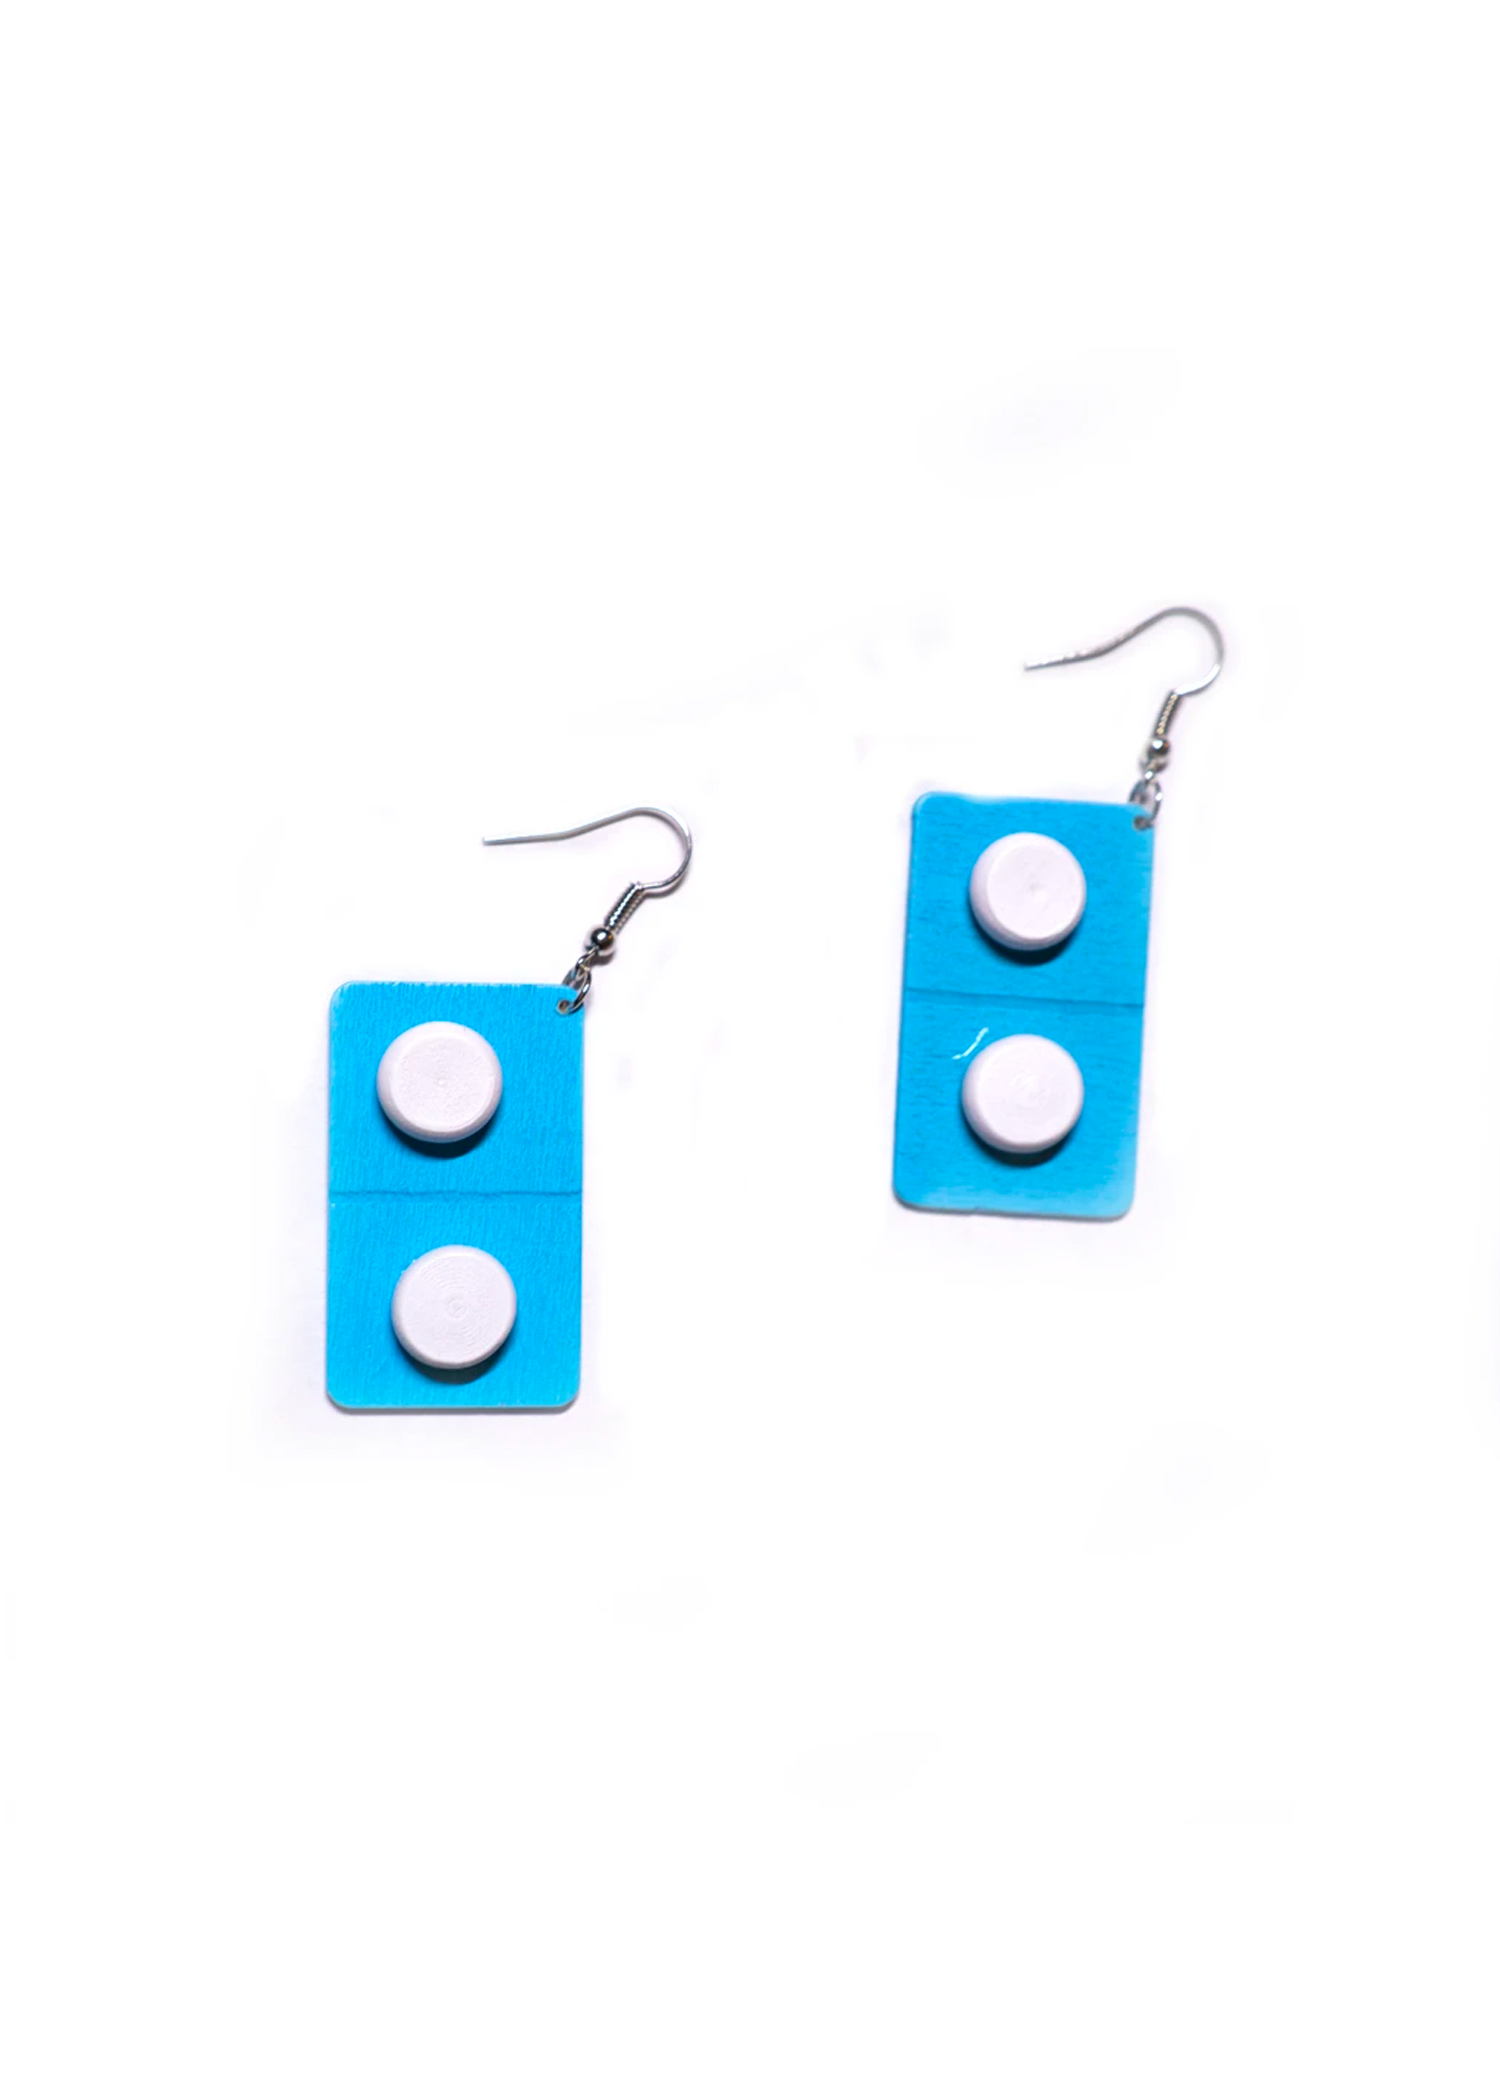 blue flat pill earrings